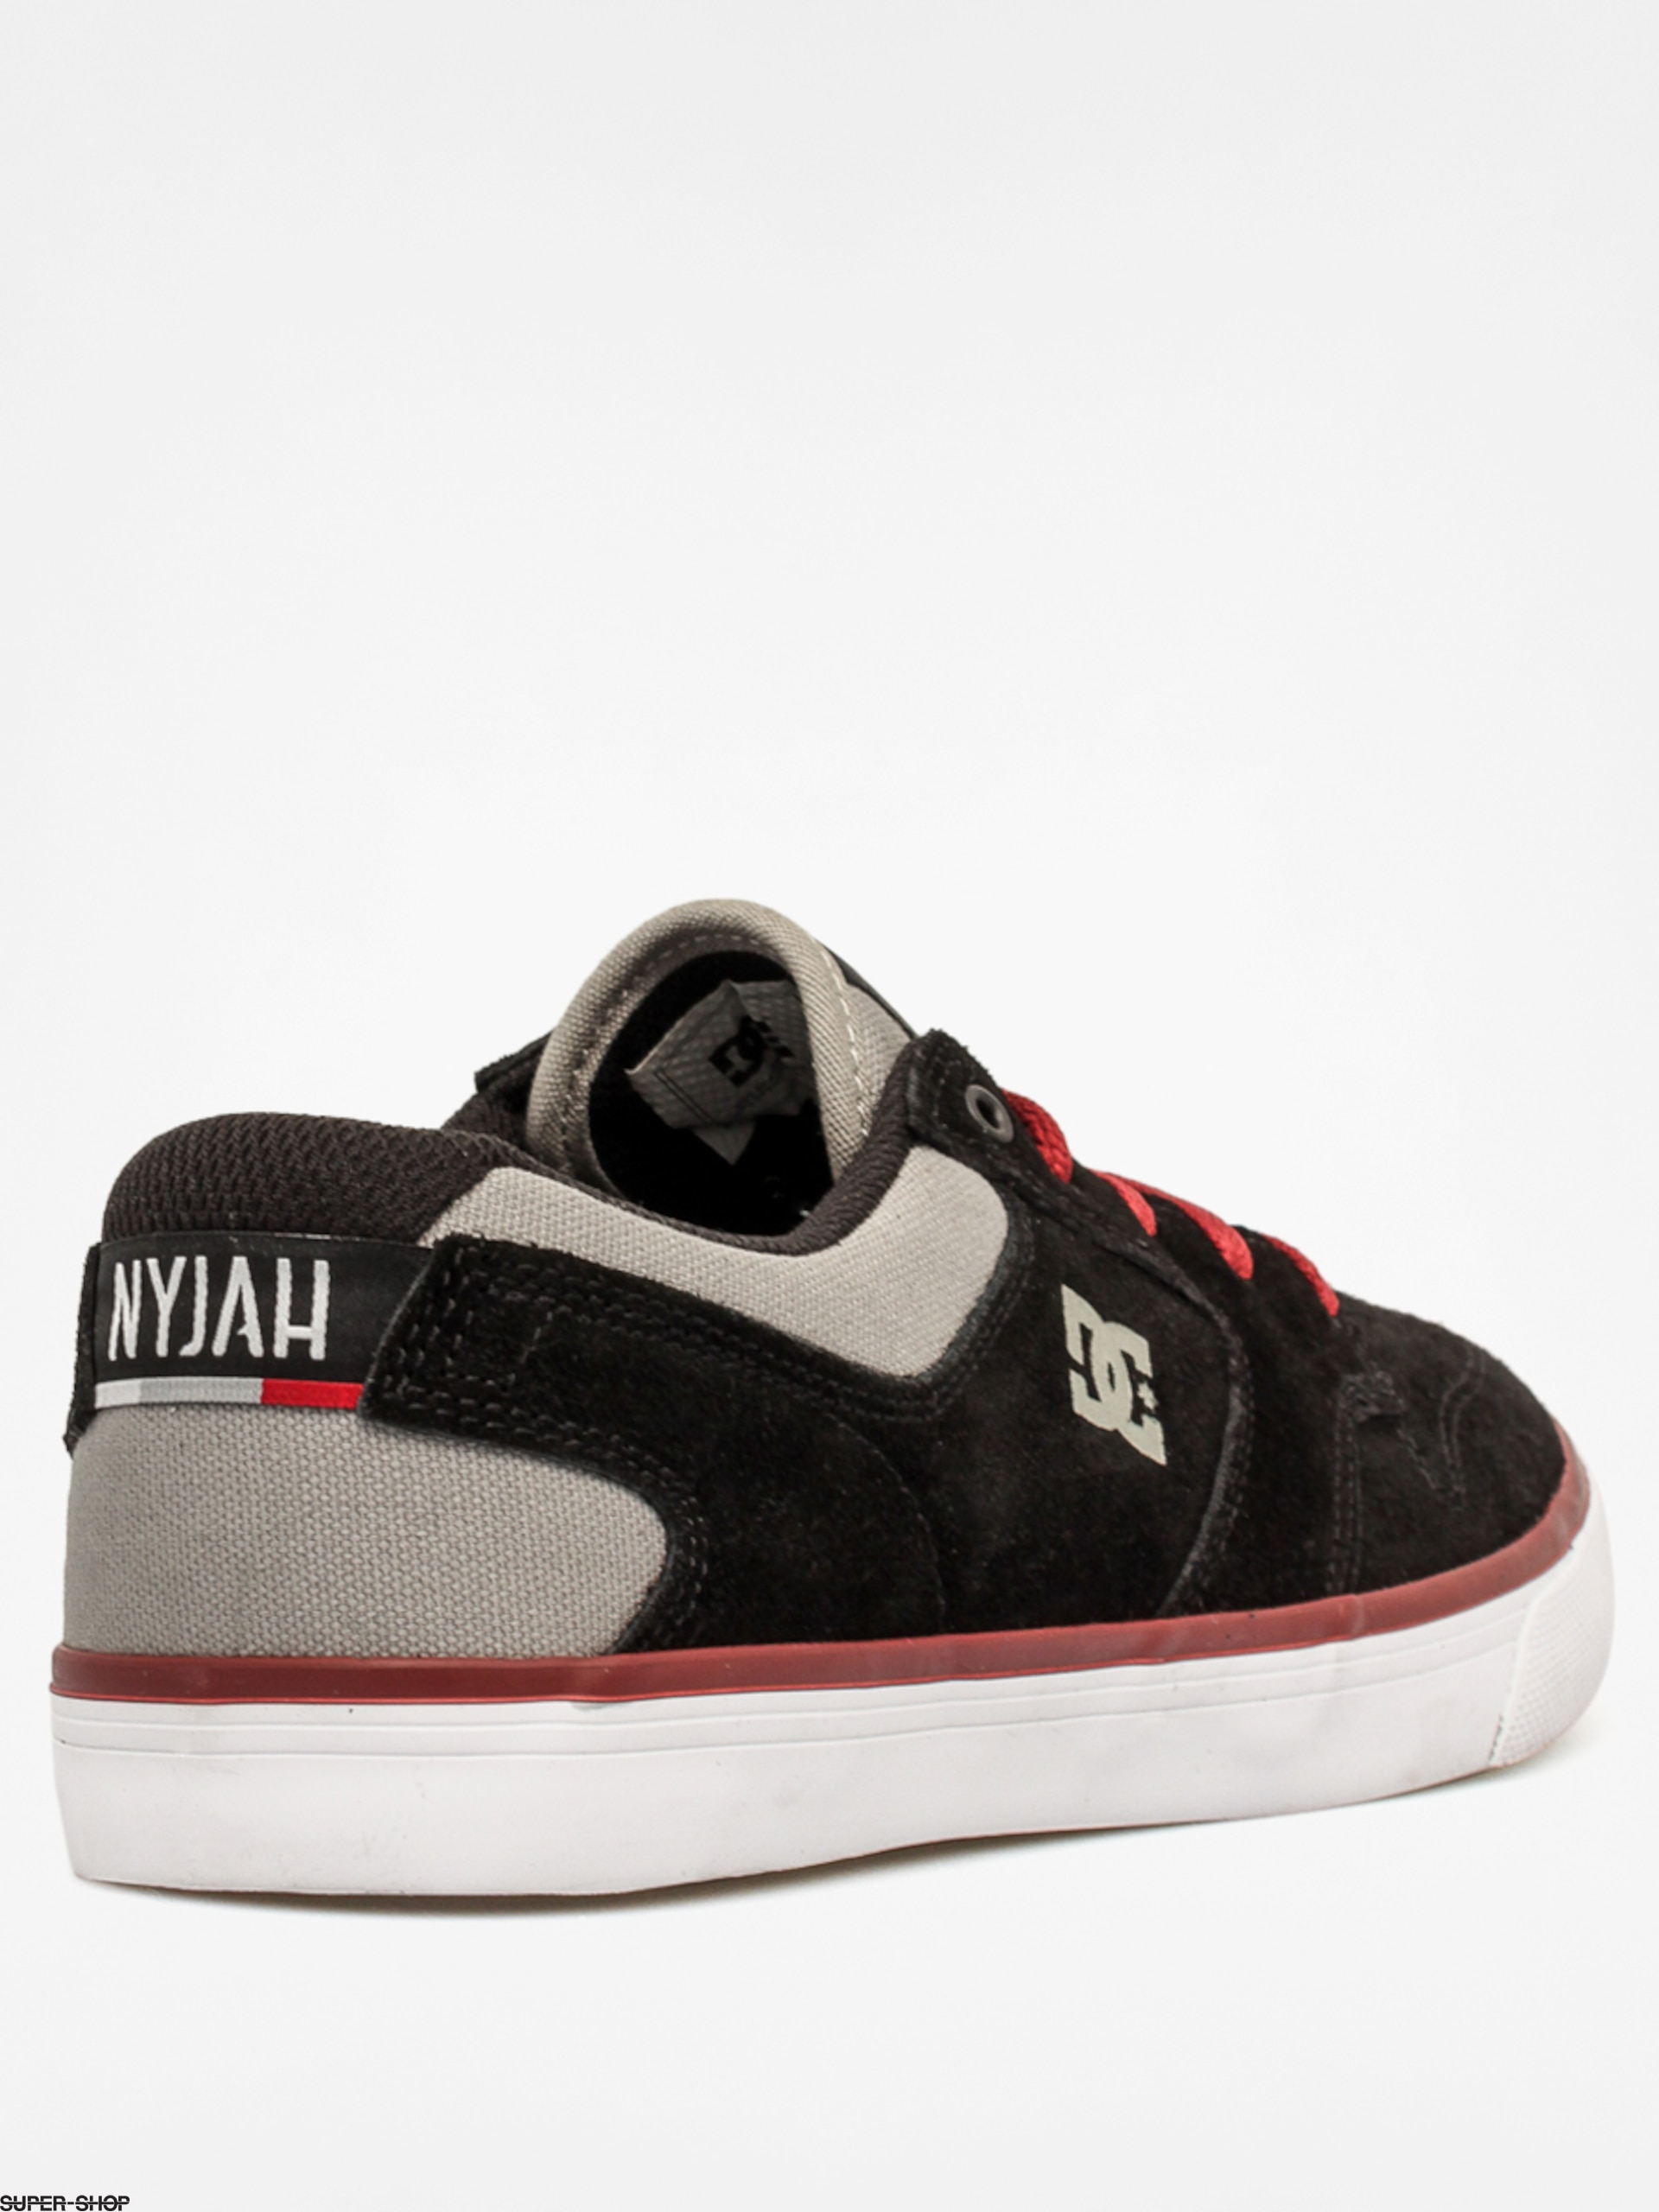 DC Shoes Nyjah Vulc (black/grey/red)